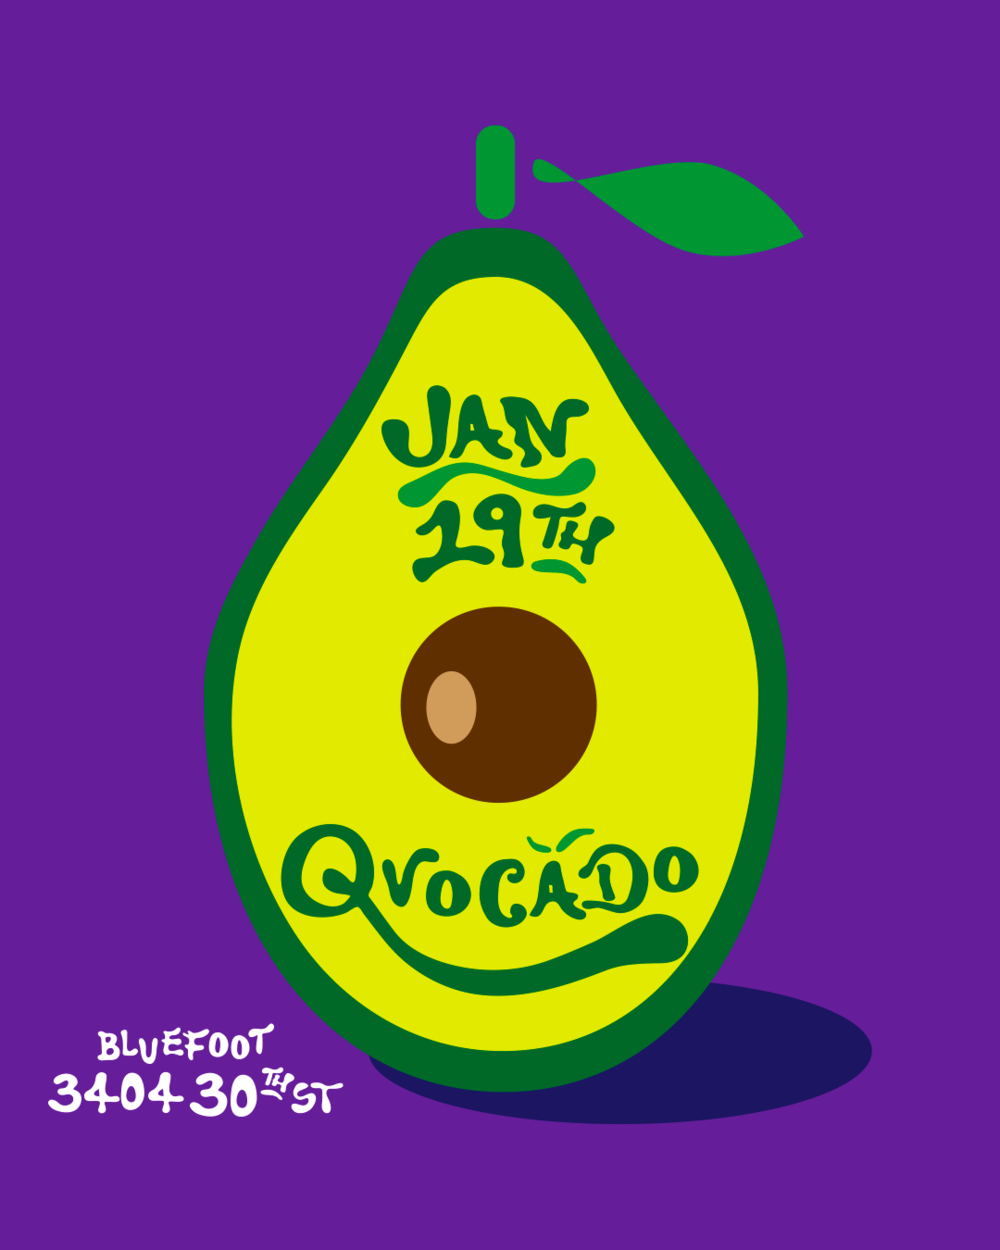 qvocado-bluefoot-1-19-4.png